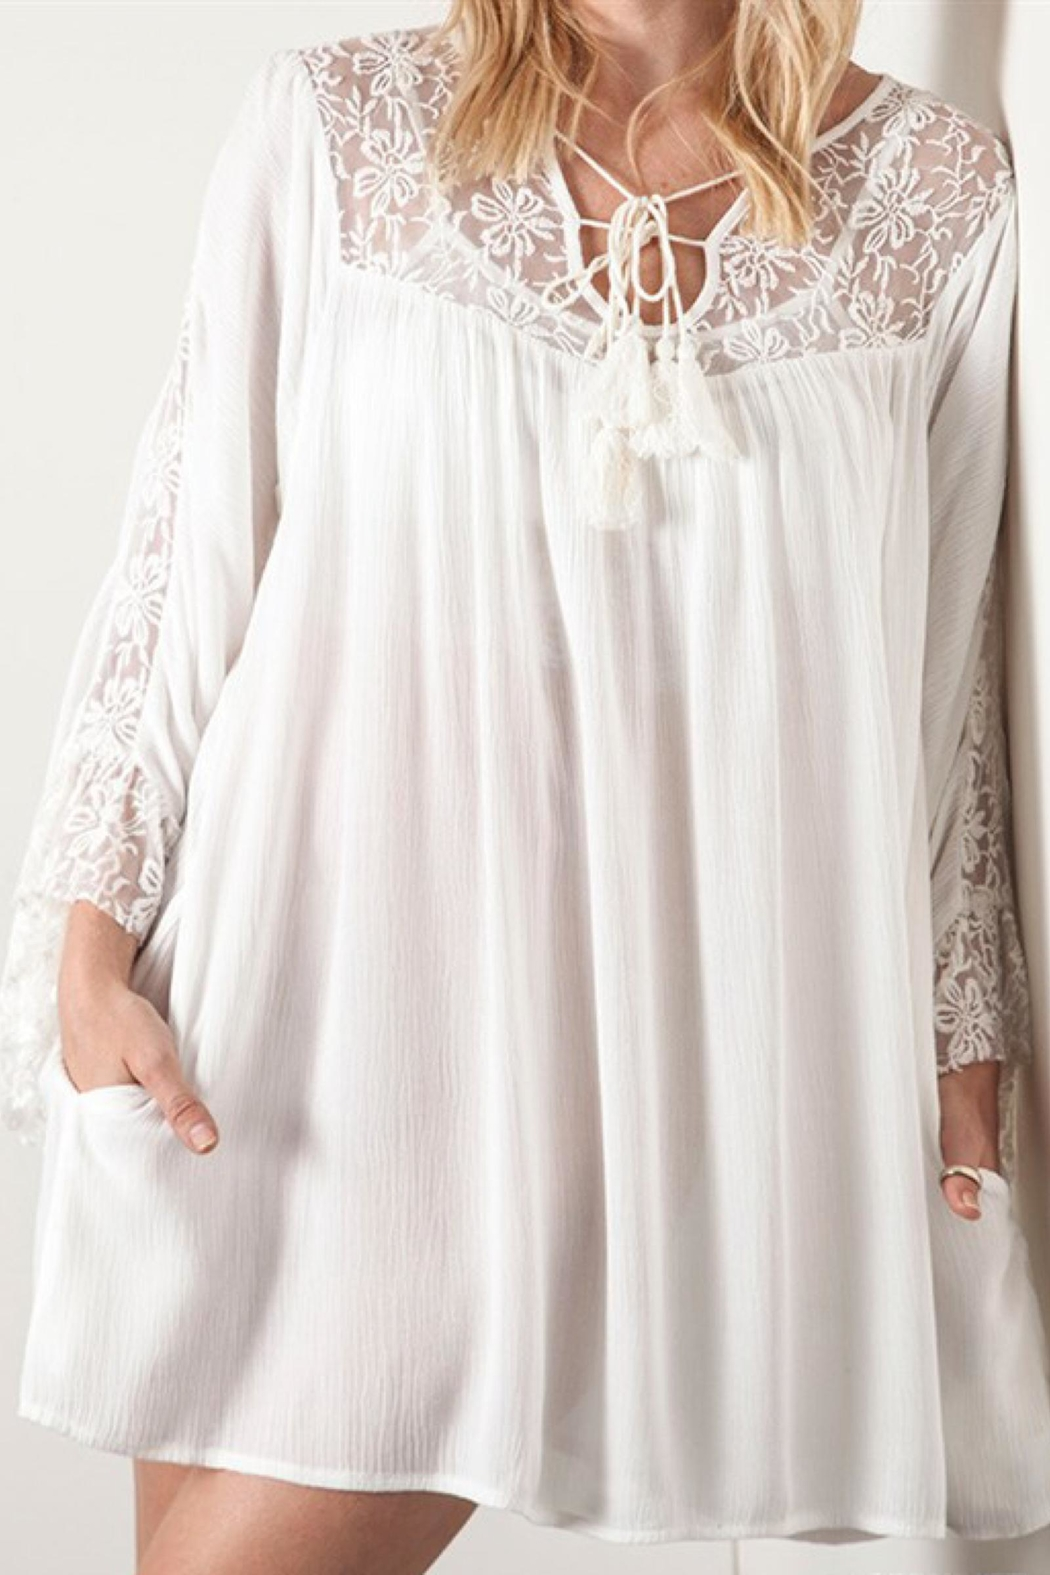 People Outfitter Lace Babydoll Dress - Front Full Image